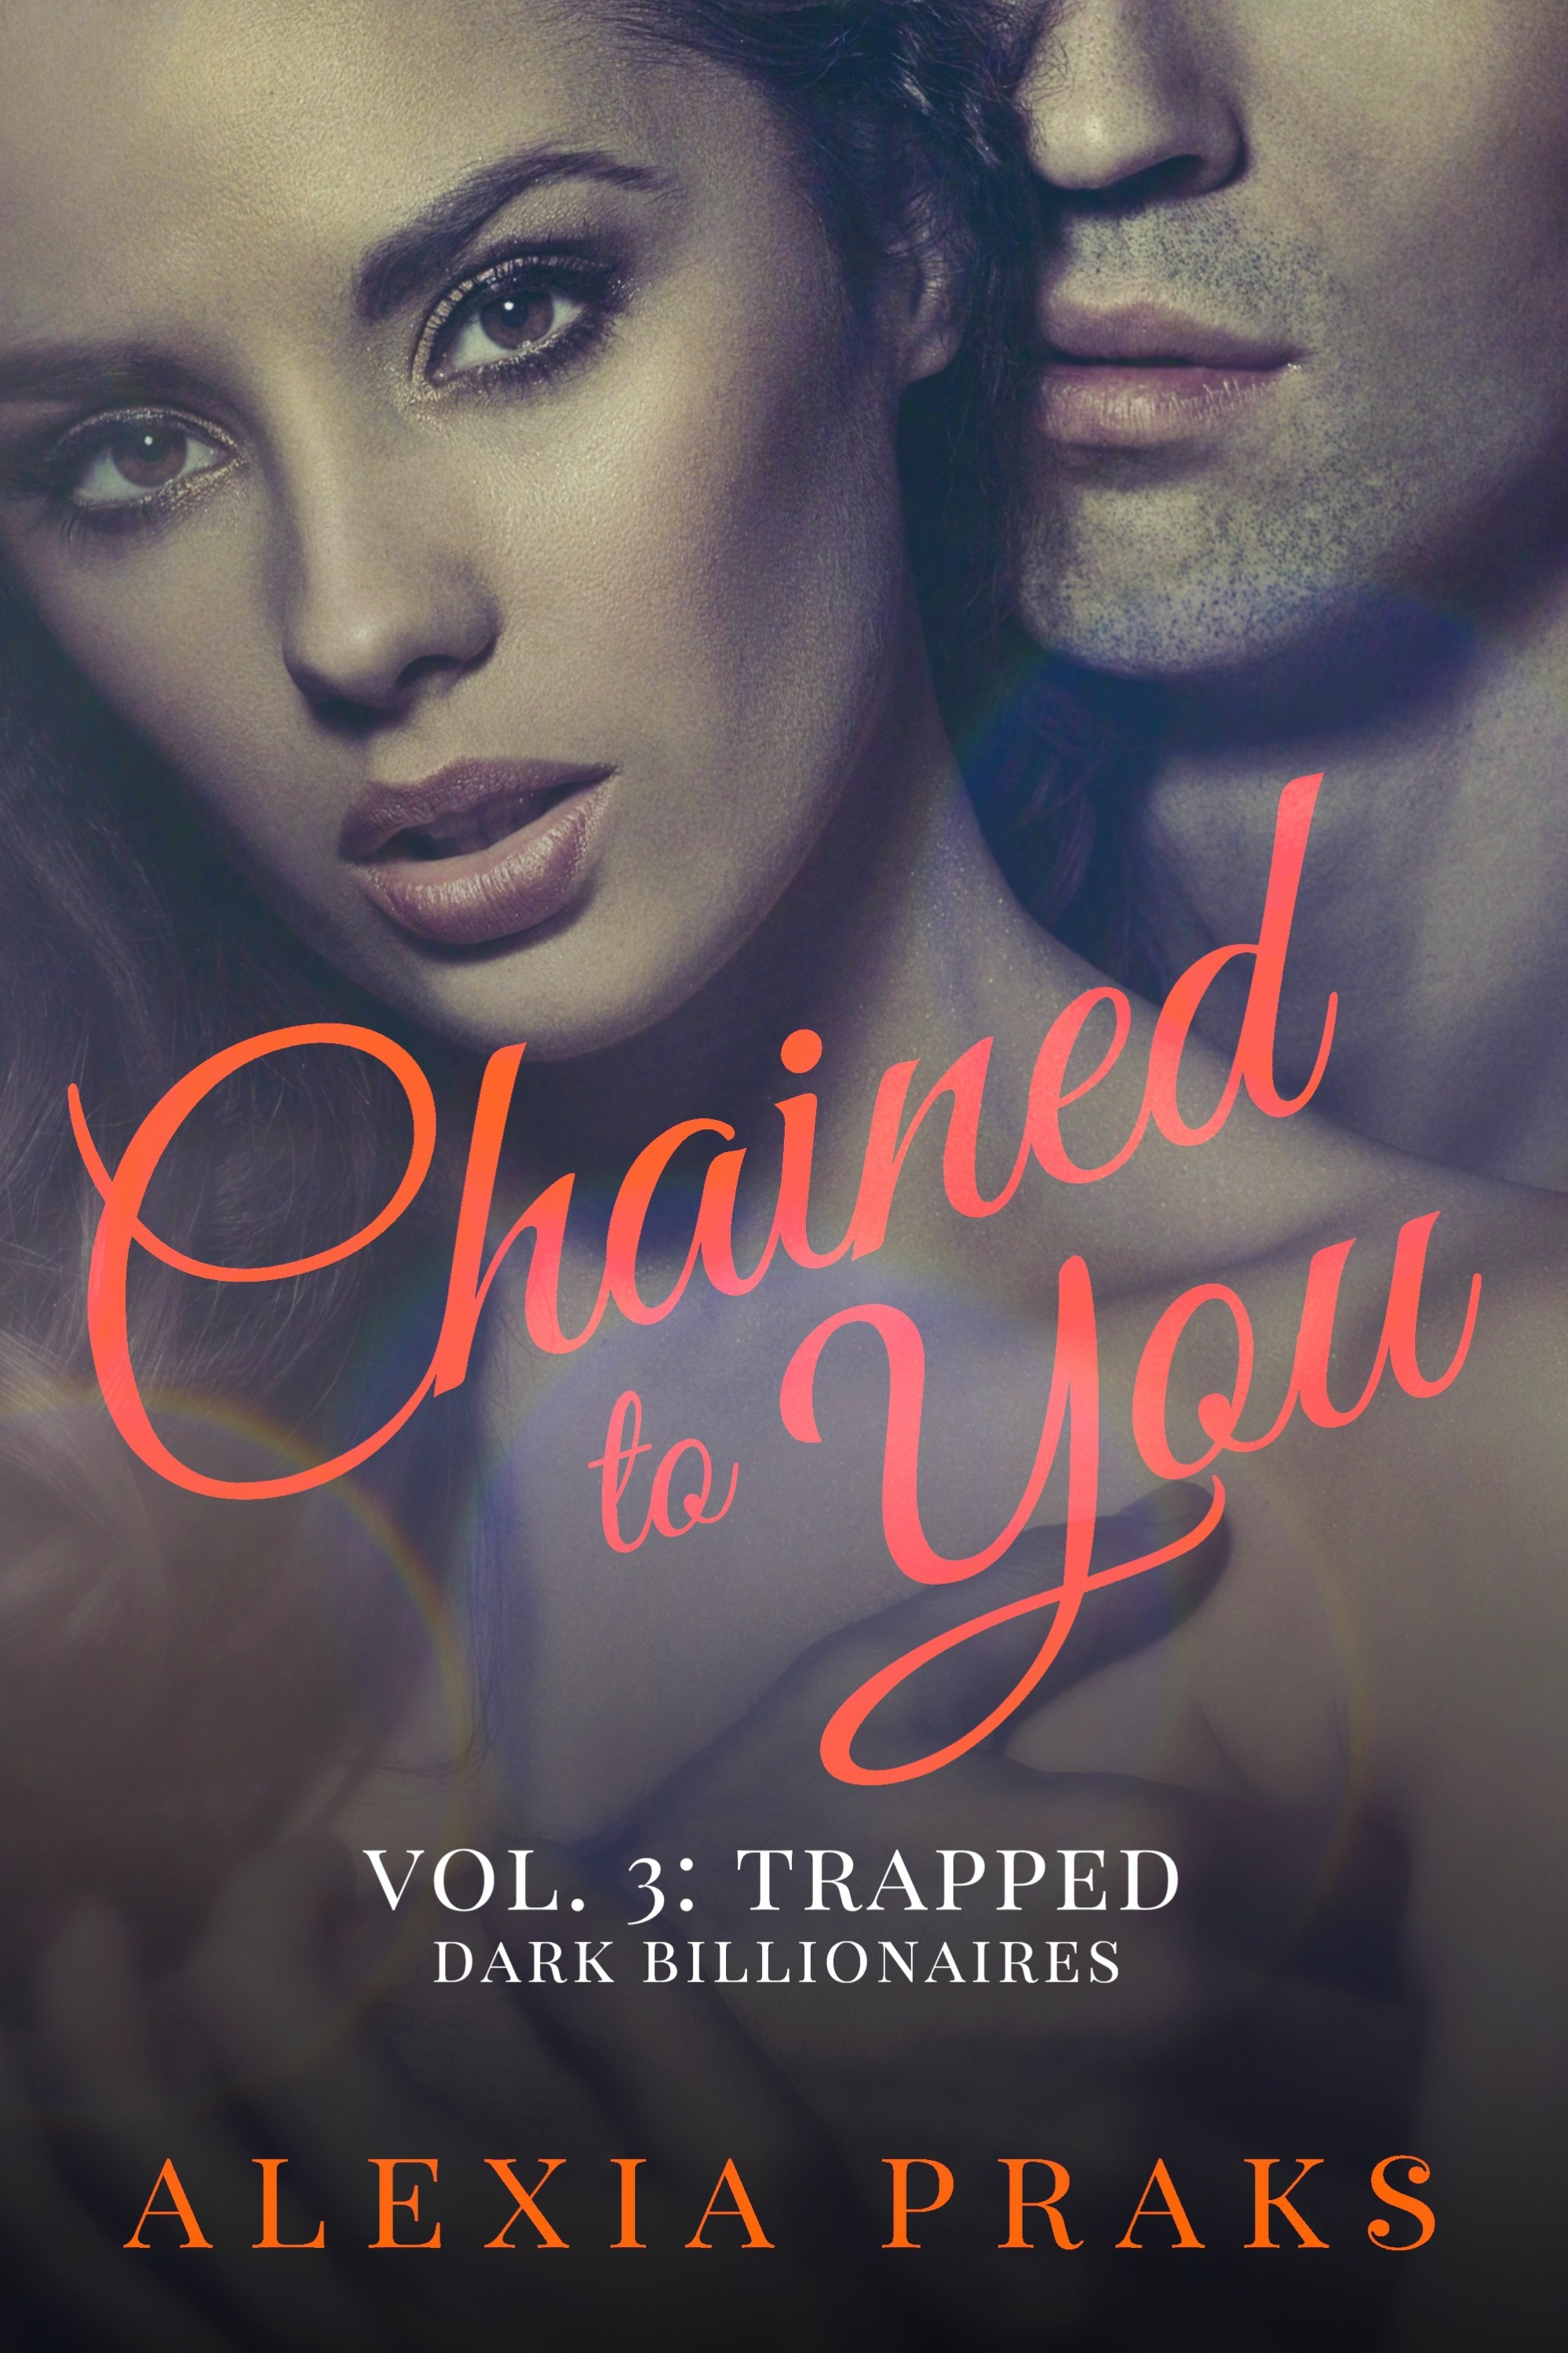 Chained to You Vol. 3: Trapped by Alexia Praks